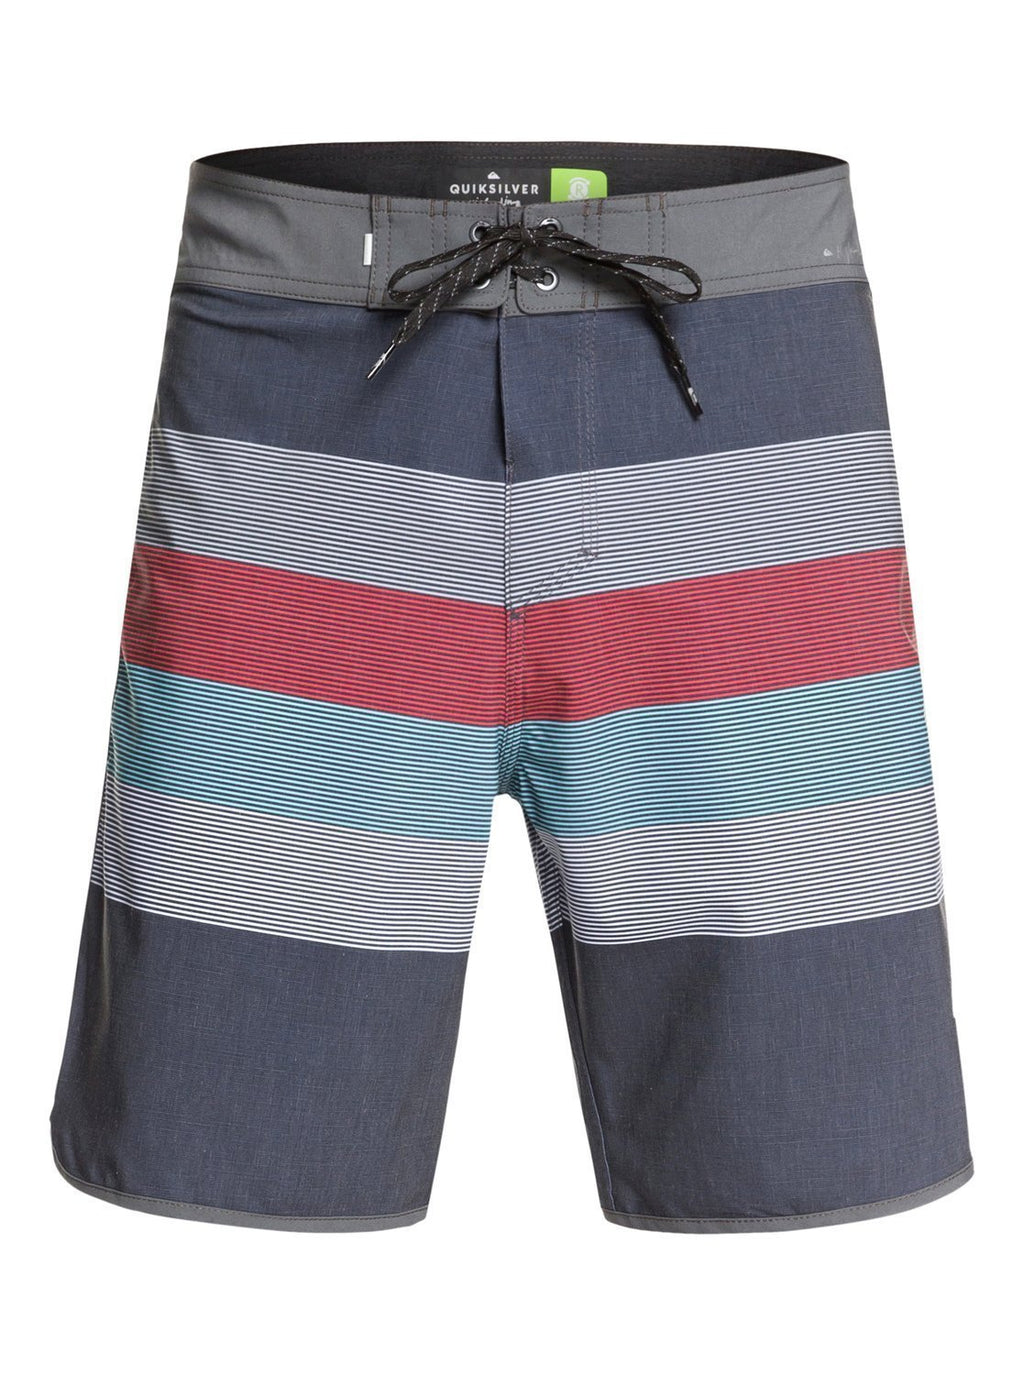 Quiksilver Men's Apparel - Boardshorts Quiksilver - Highline Sunset 19